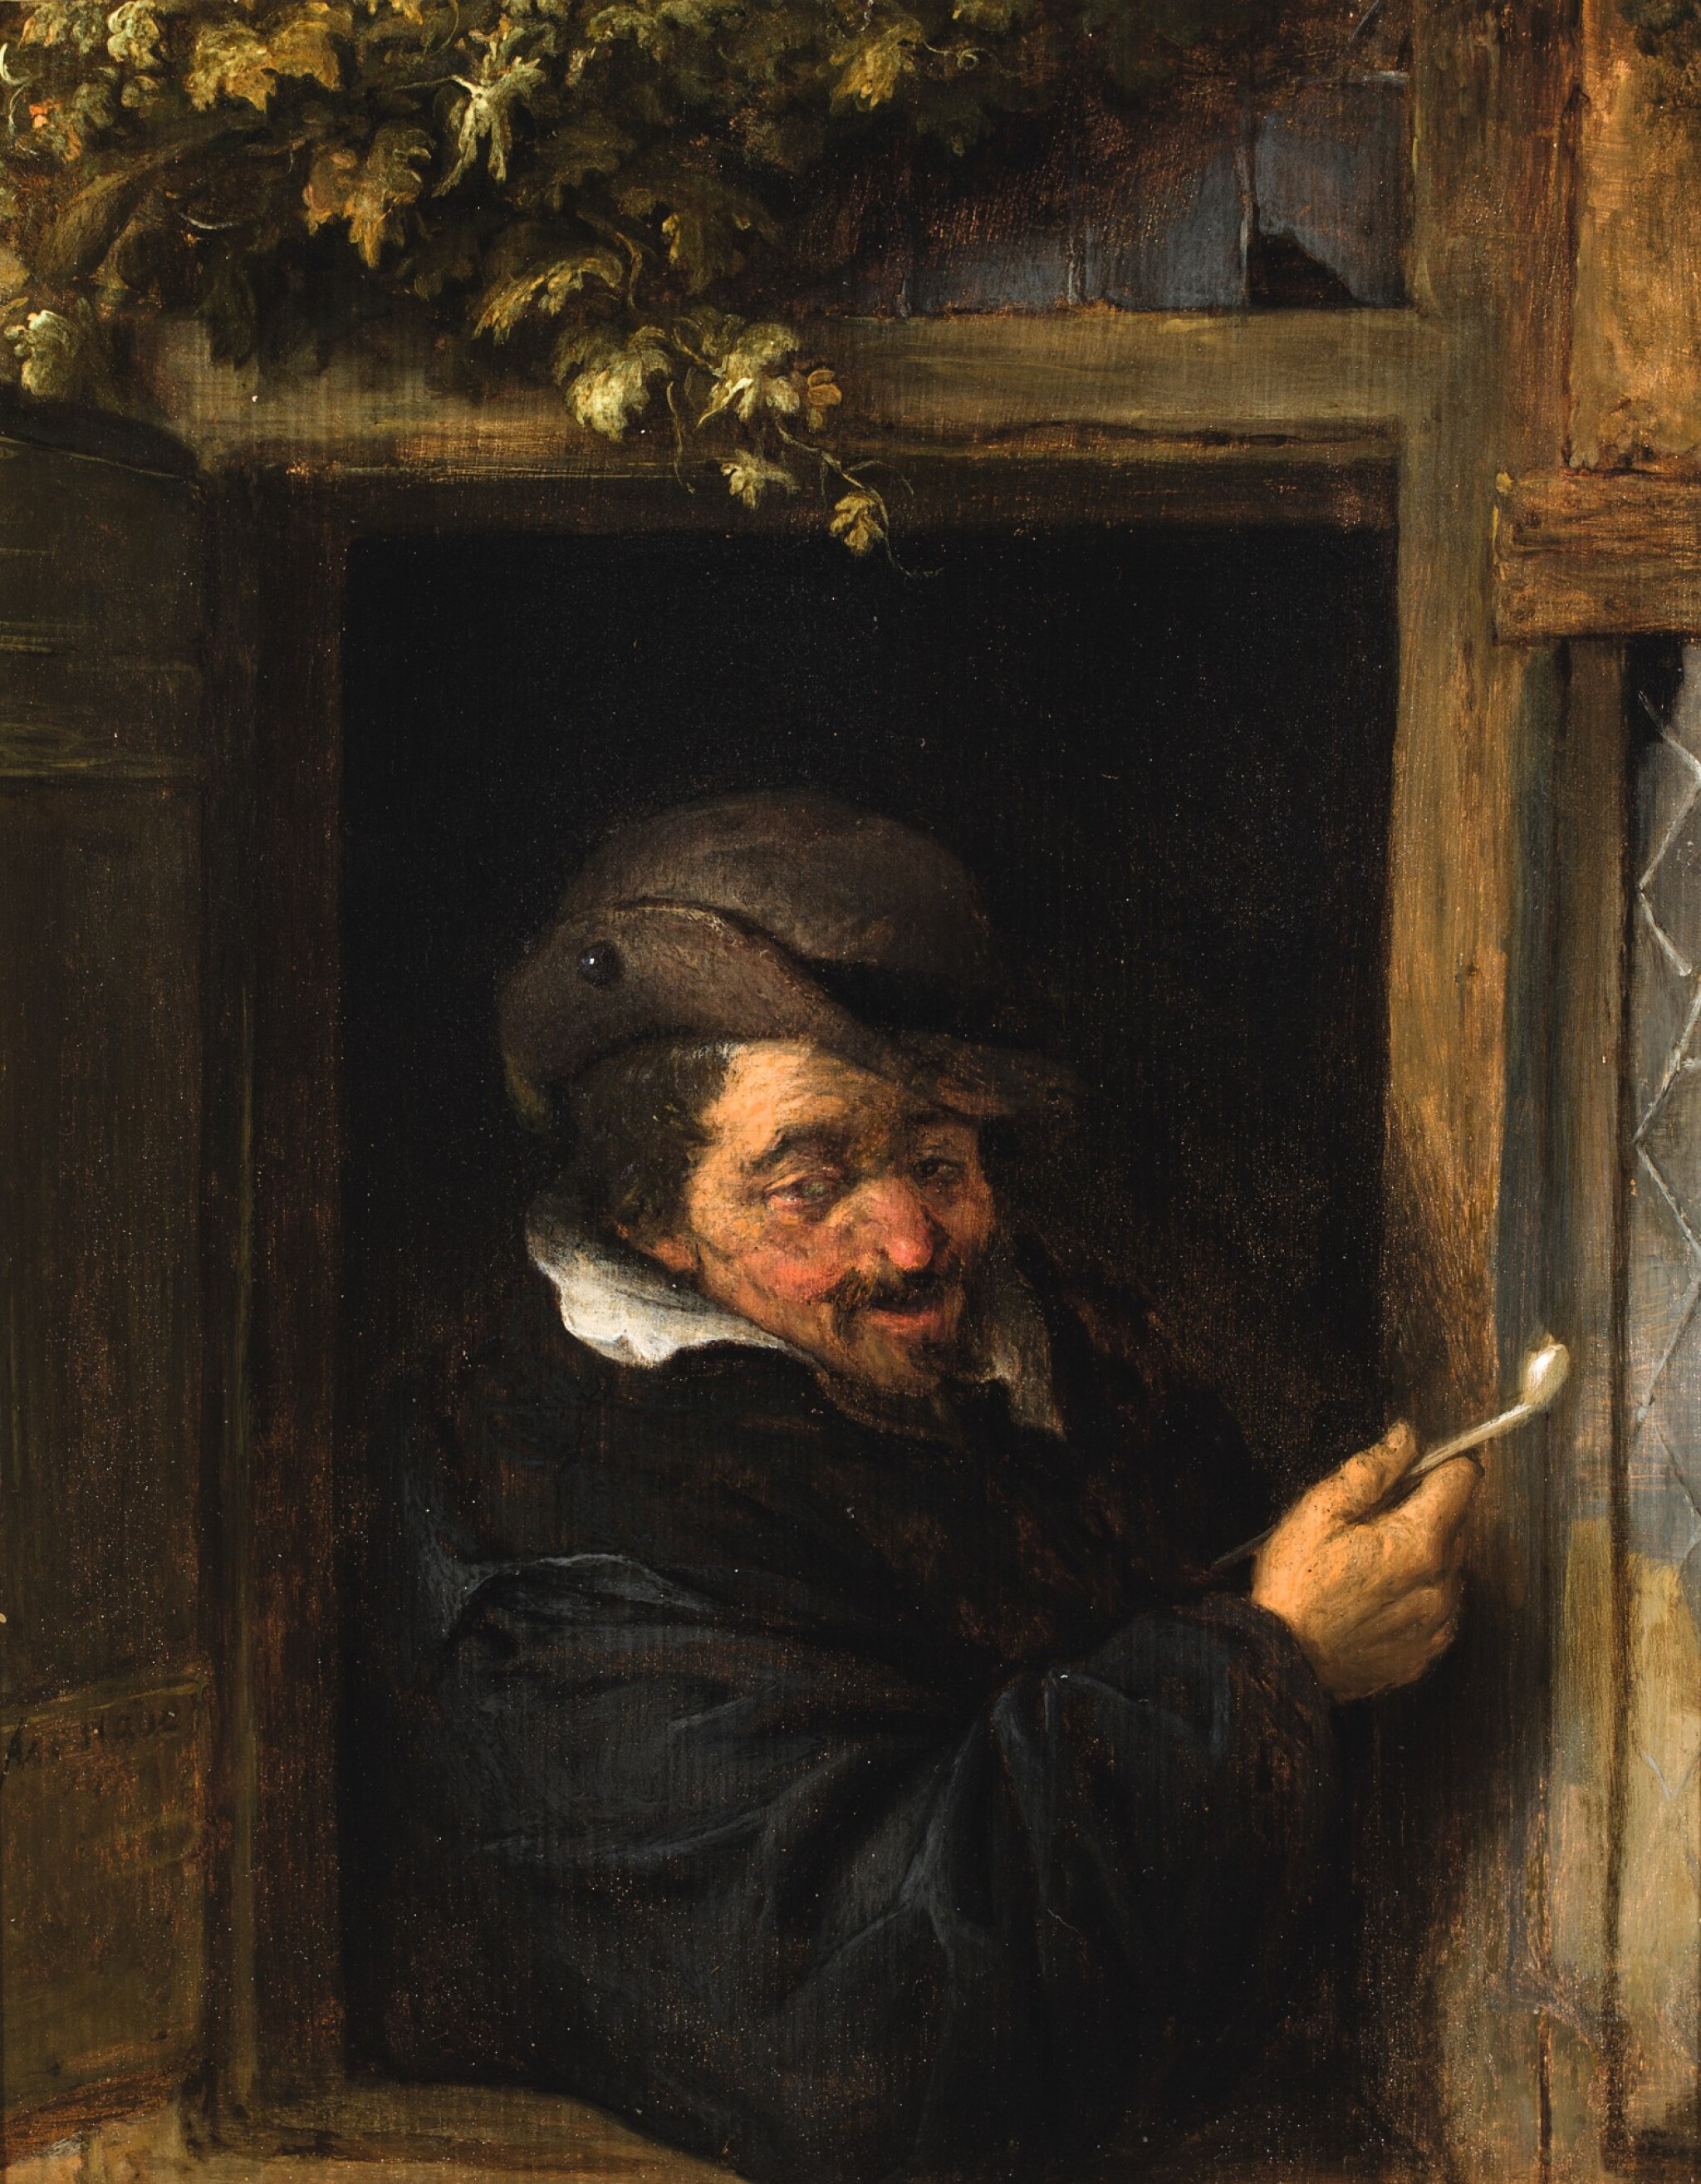 View full screen - View 1 of Lot 101. ADRIAEN JANSZ. VAN OSTADE  |  A PEASANT IN A WINDOW SMOKING A PIPE.